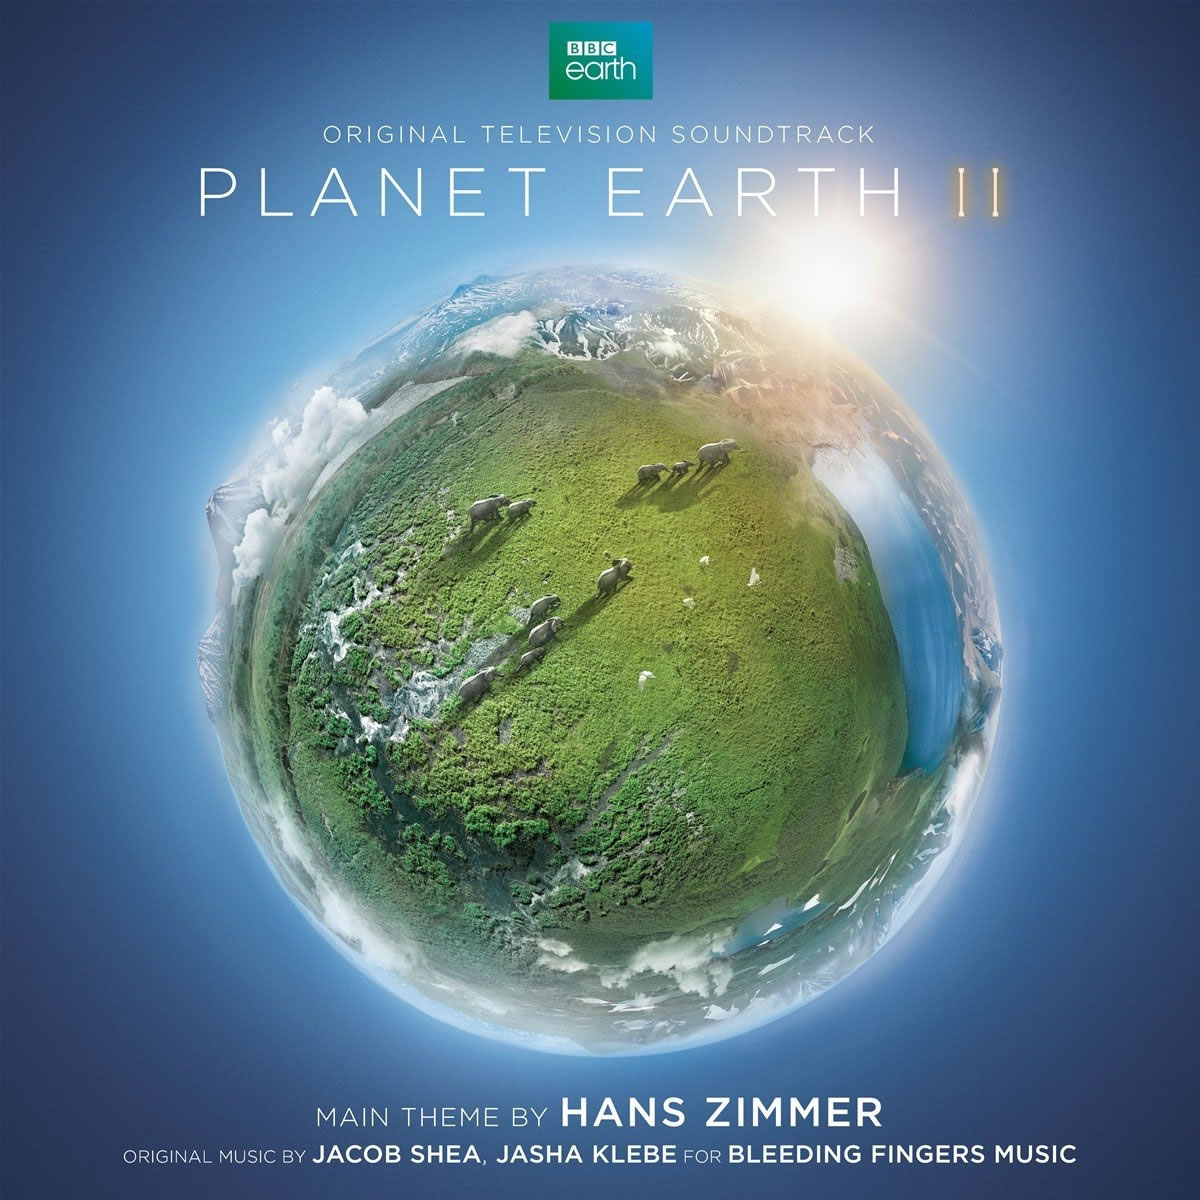 PLANET EARTH II - THE ORIGINAL TELEVISION SOUNDTRACK (2 AUDIO CDs)